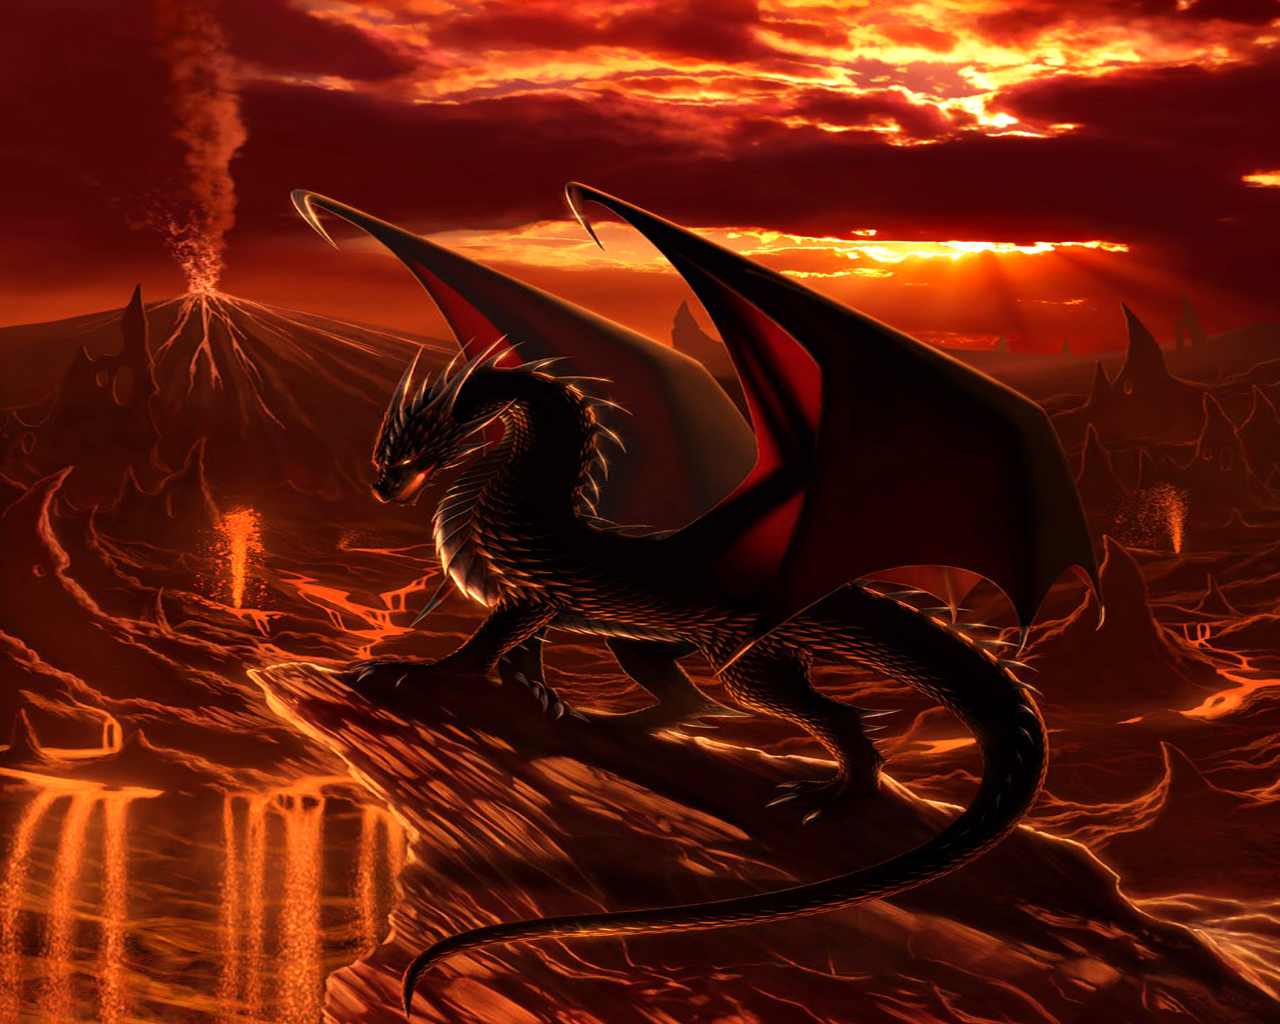 Dragons images Dragon Wallpaper wallpaper photos 13975550 1280x1024